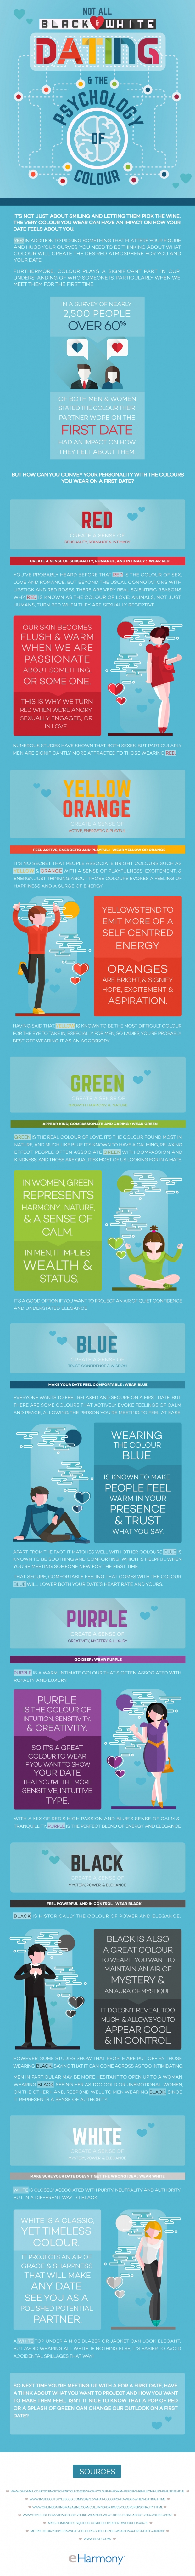 eHarmony-infographic-dating-and-the-psychology-of-colour